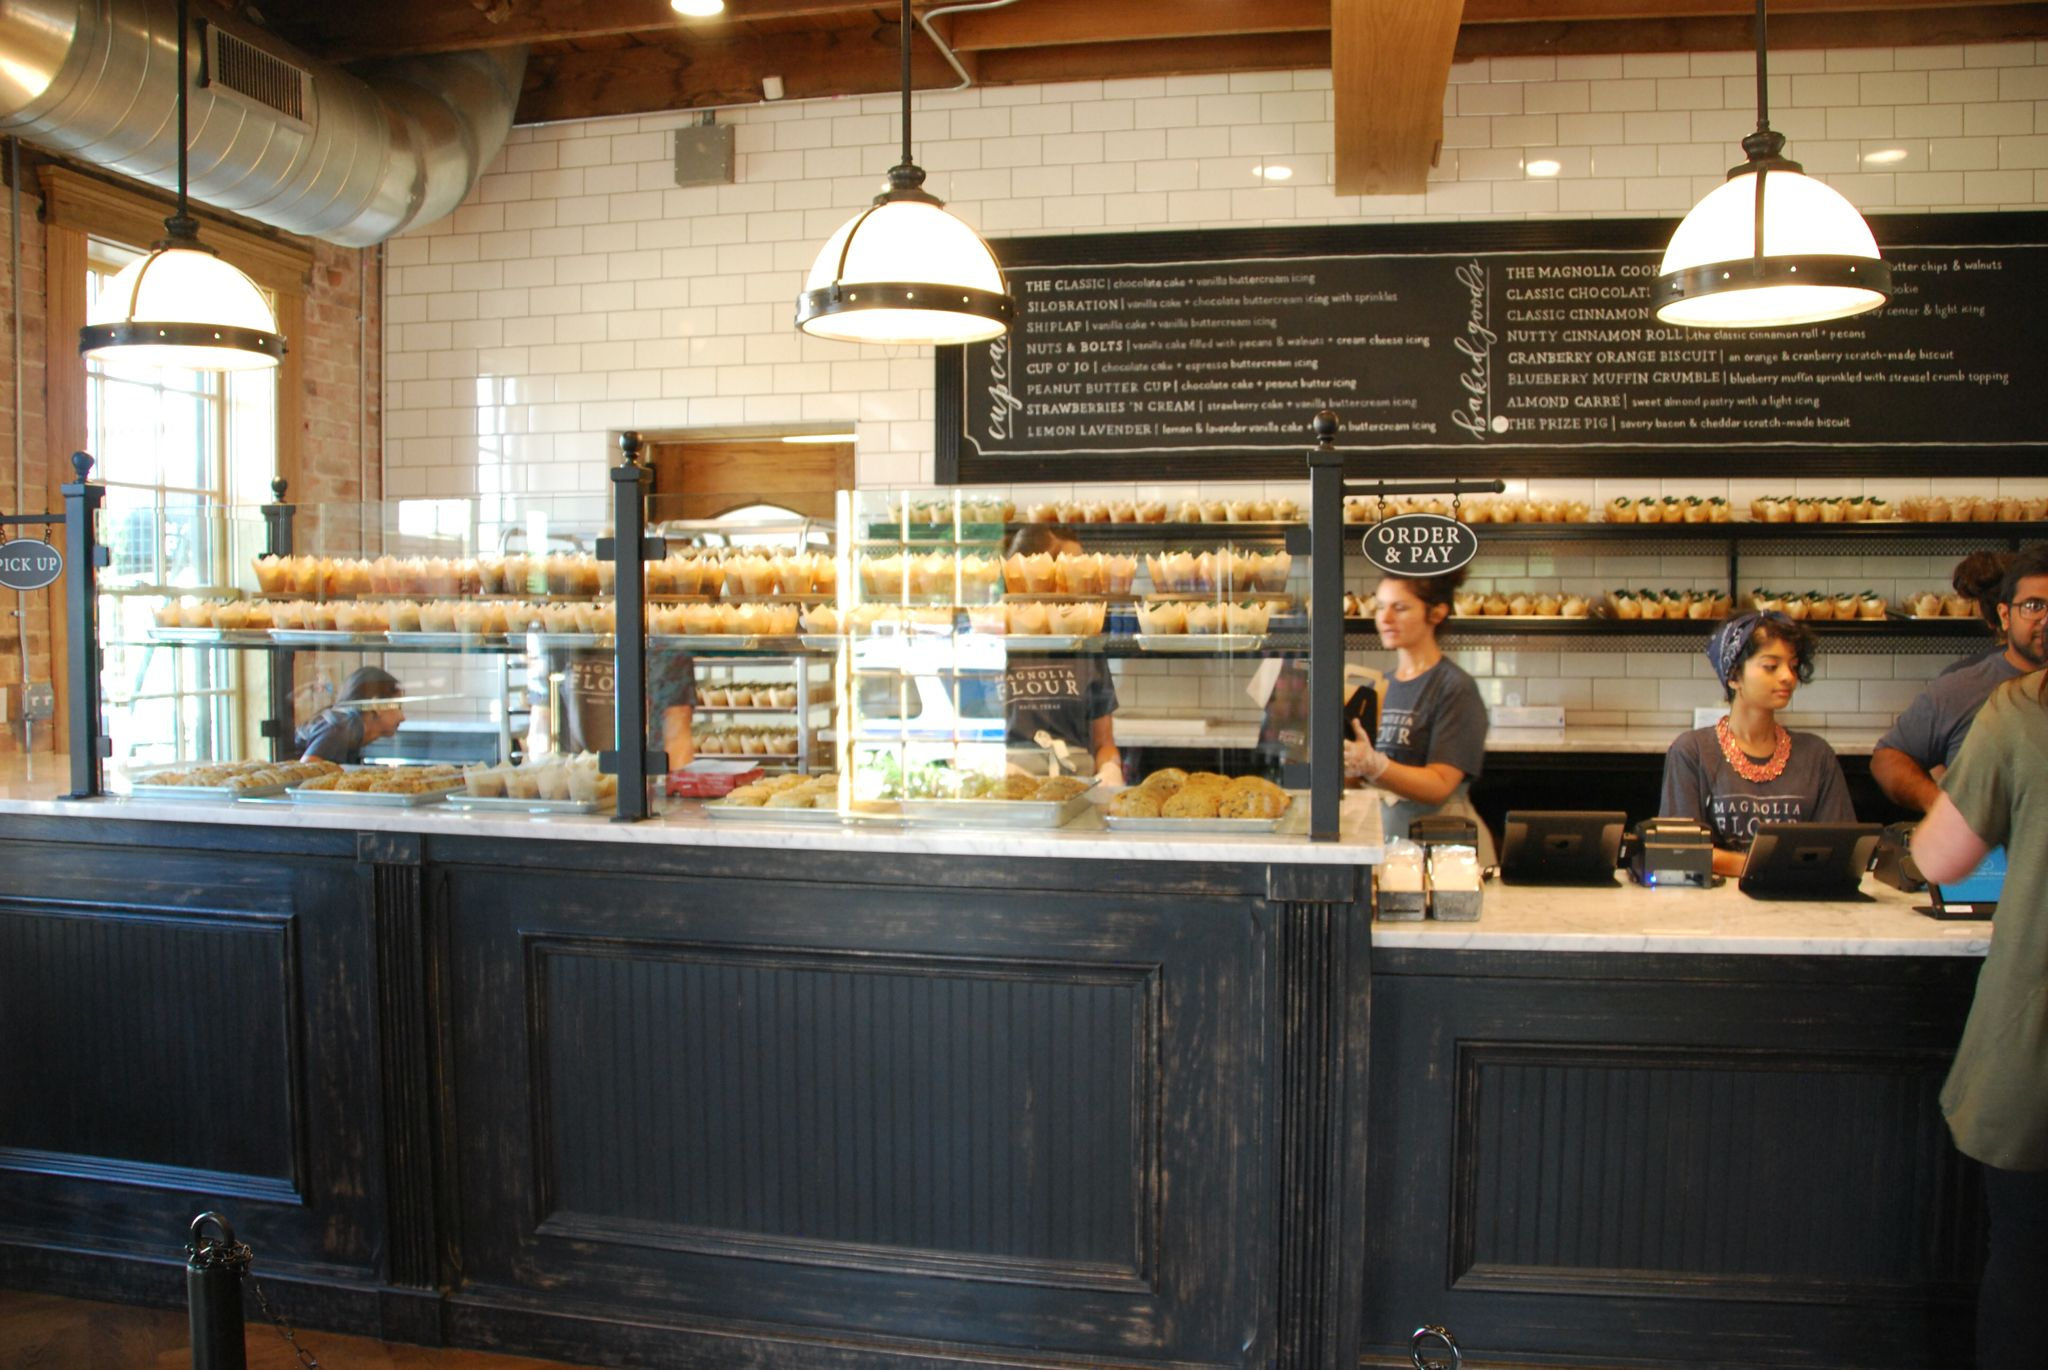 Magnolia Flour The New Bakery Of Fixer Upper S Joanna Gaines Is Now Open Everything Is D Fixer Upper Joanna Gaines Bakery Design Magnolia Farms Fixer Upper